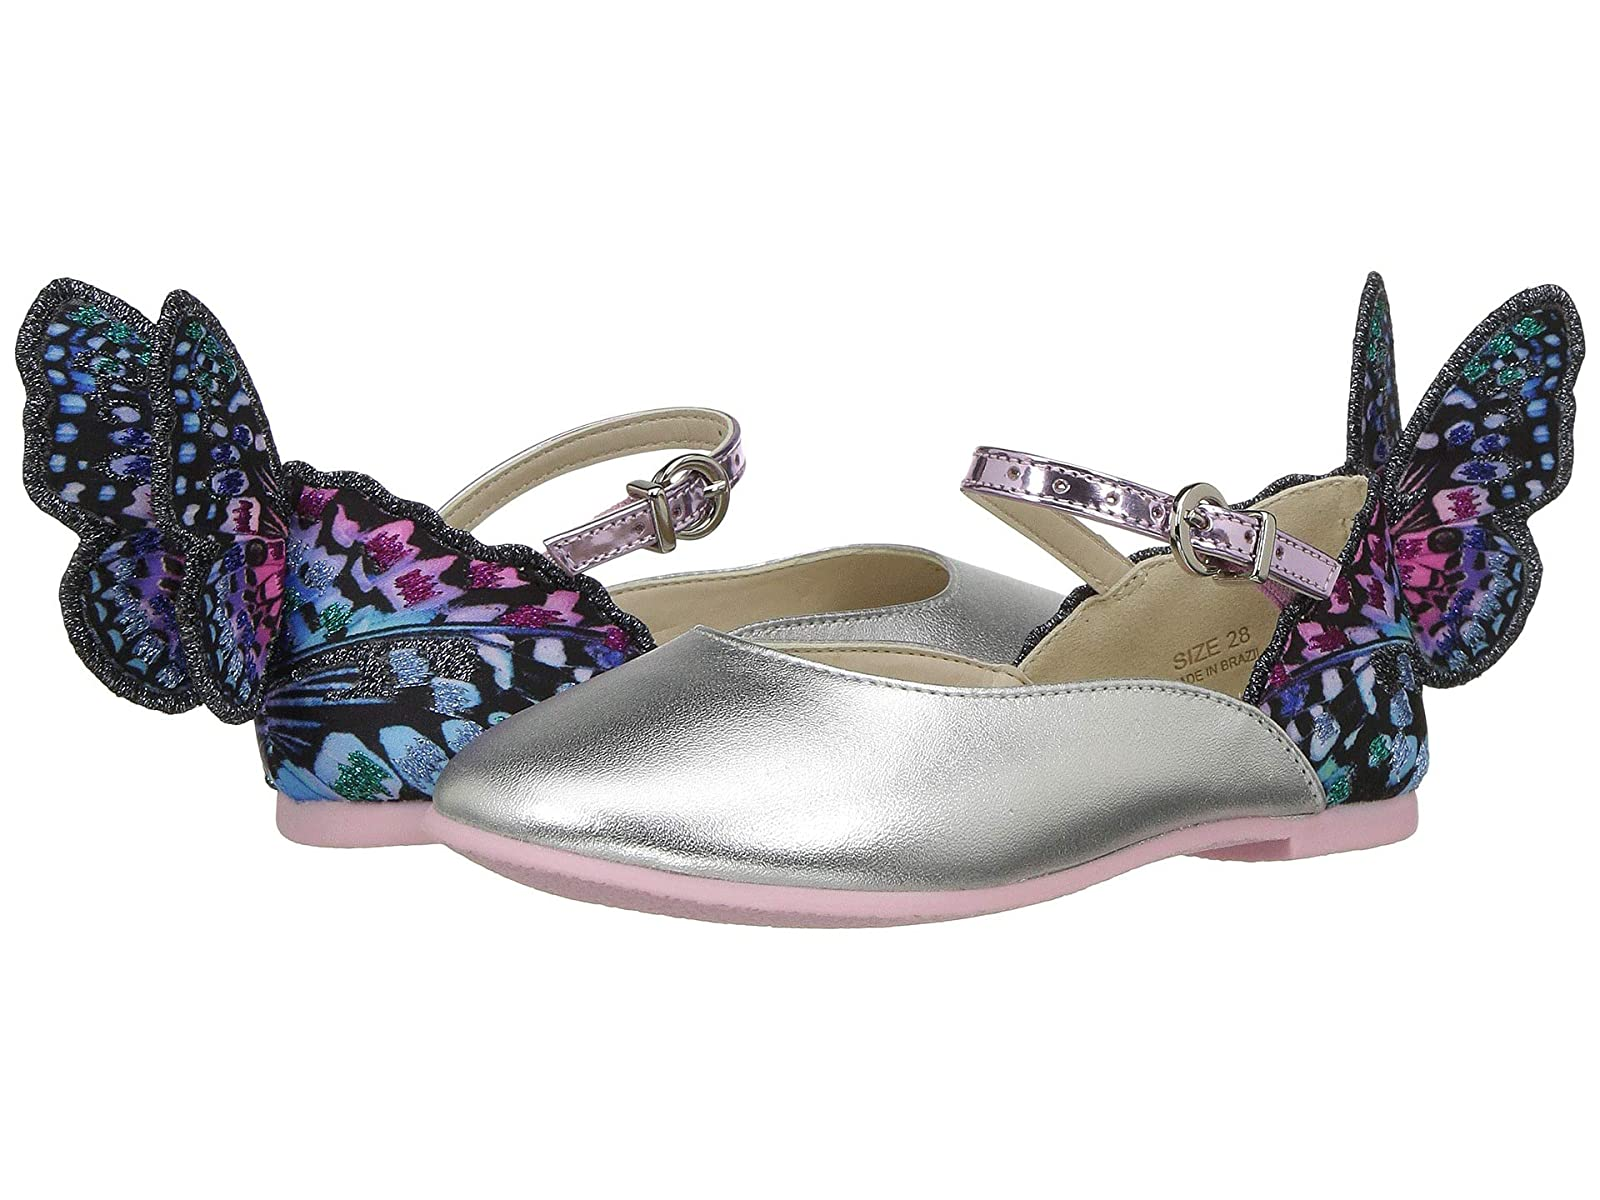 Sophia Webster Chiara Embroidery (Toddler/Little Kid)Atmospheric grades have affordable shoes